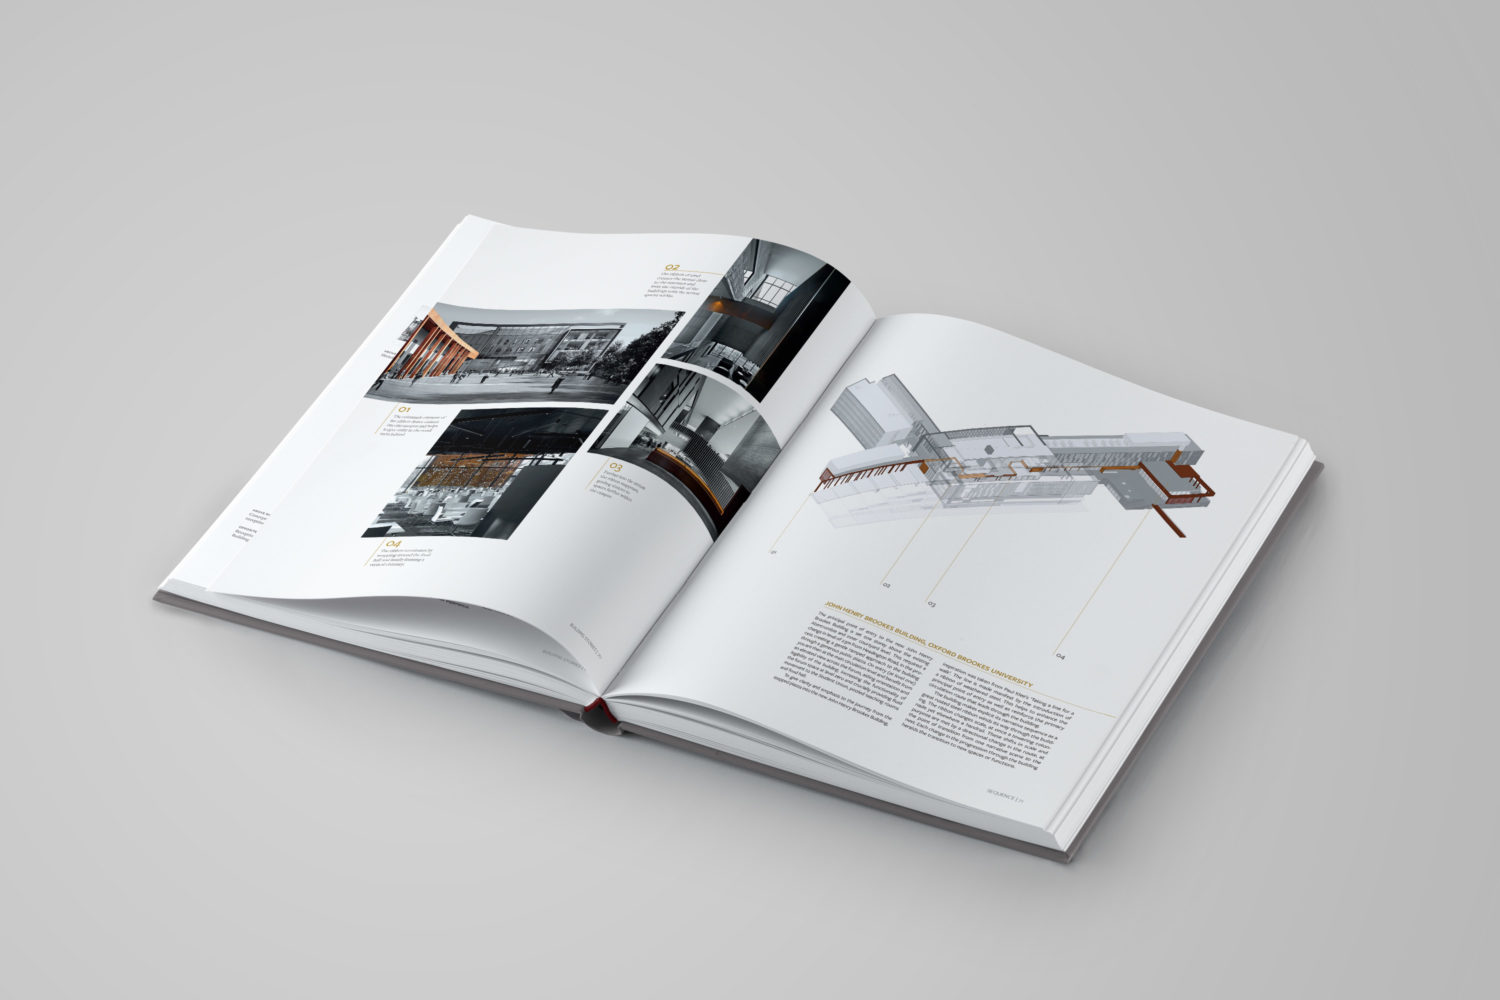 Design Engine Building Stories Book publication by Martin Pearce